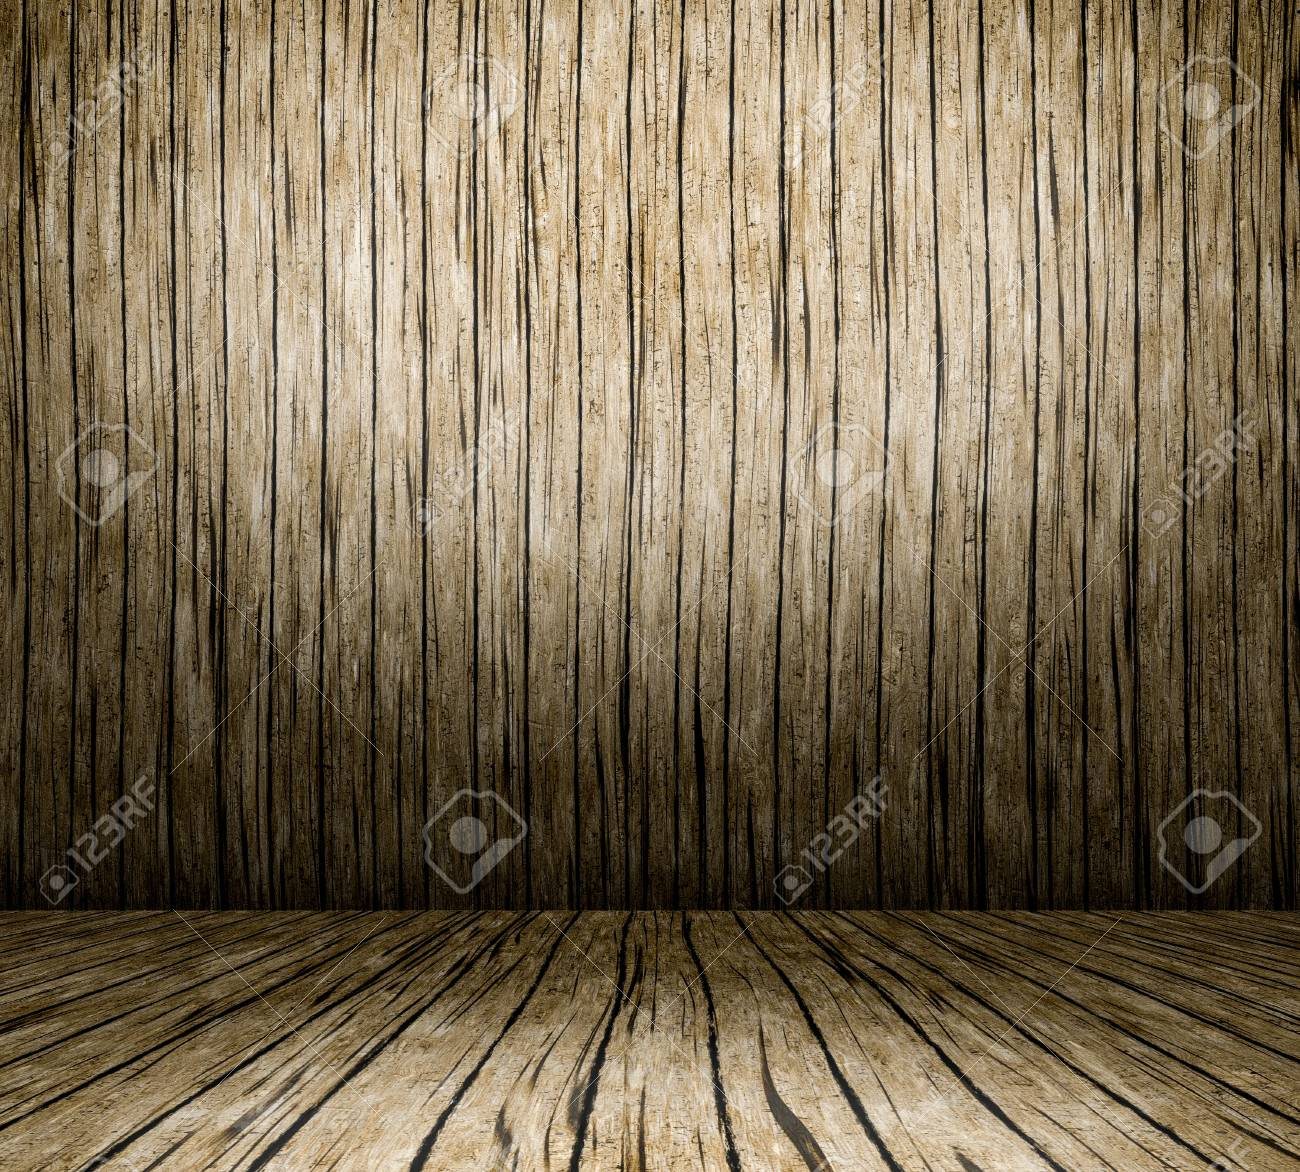 Interior with wooden floor and wall userful as background Stock Photo - 18952249